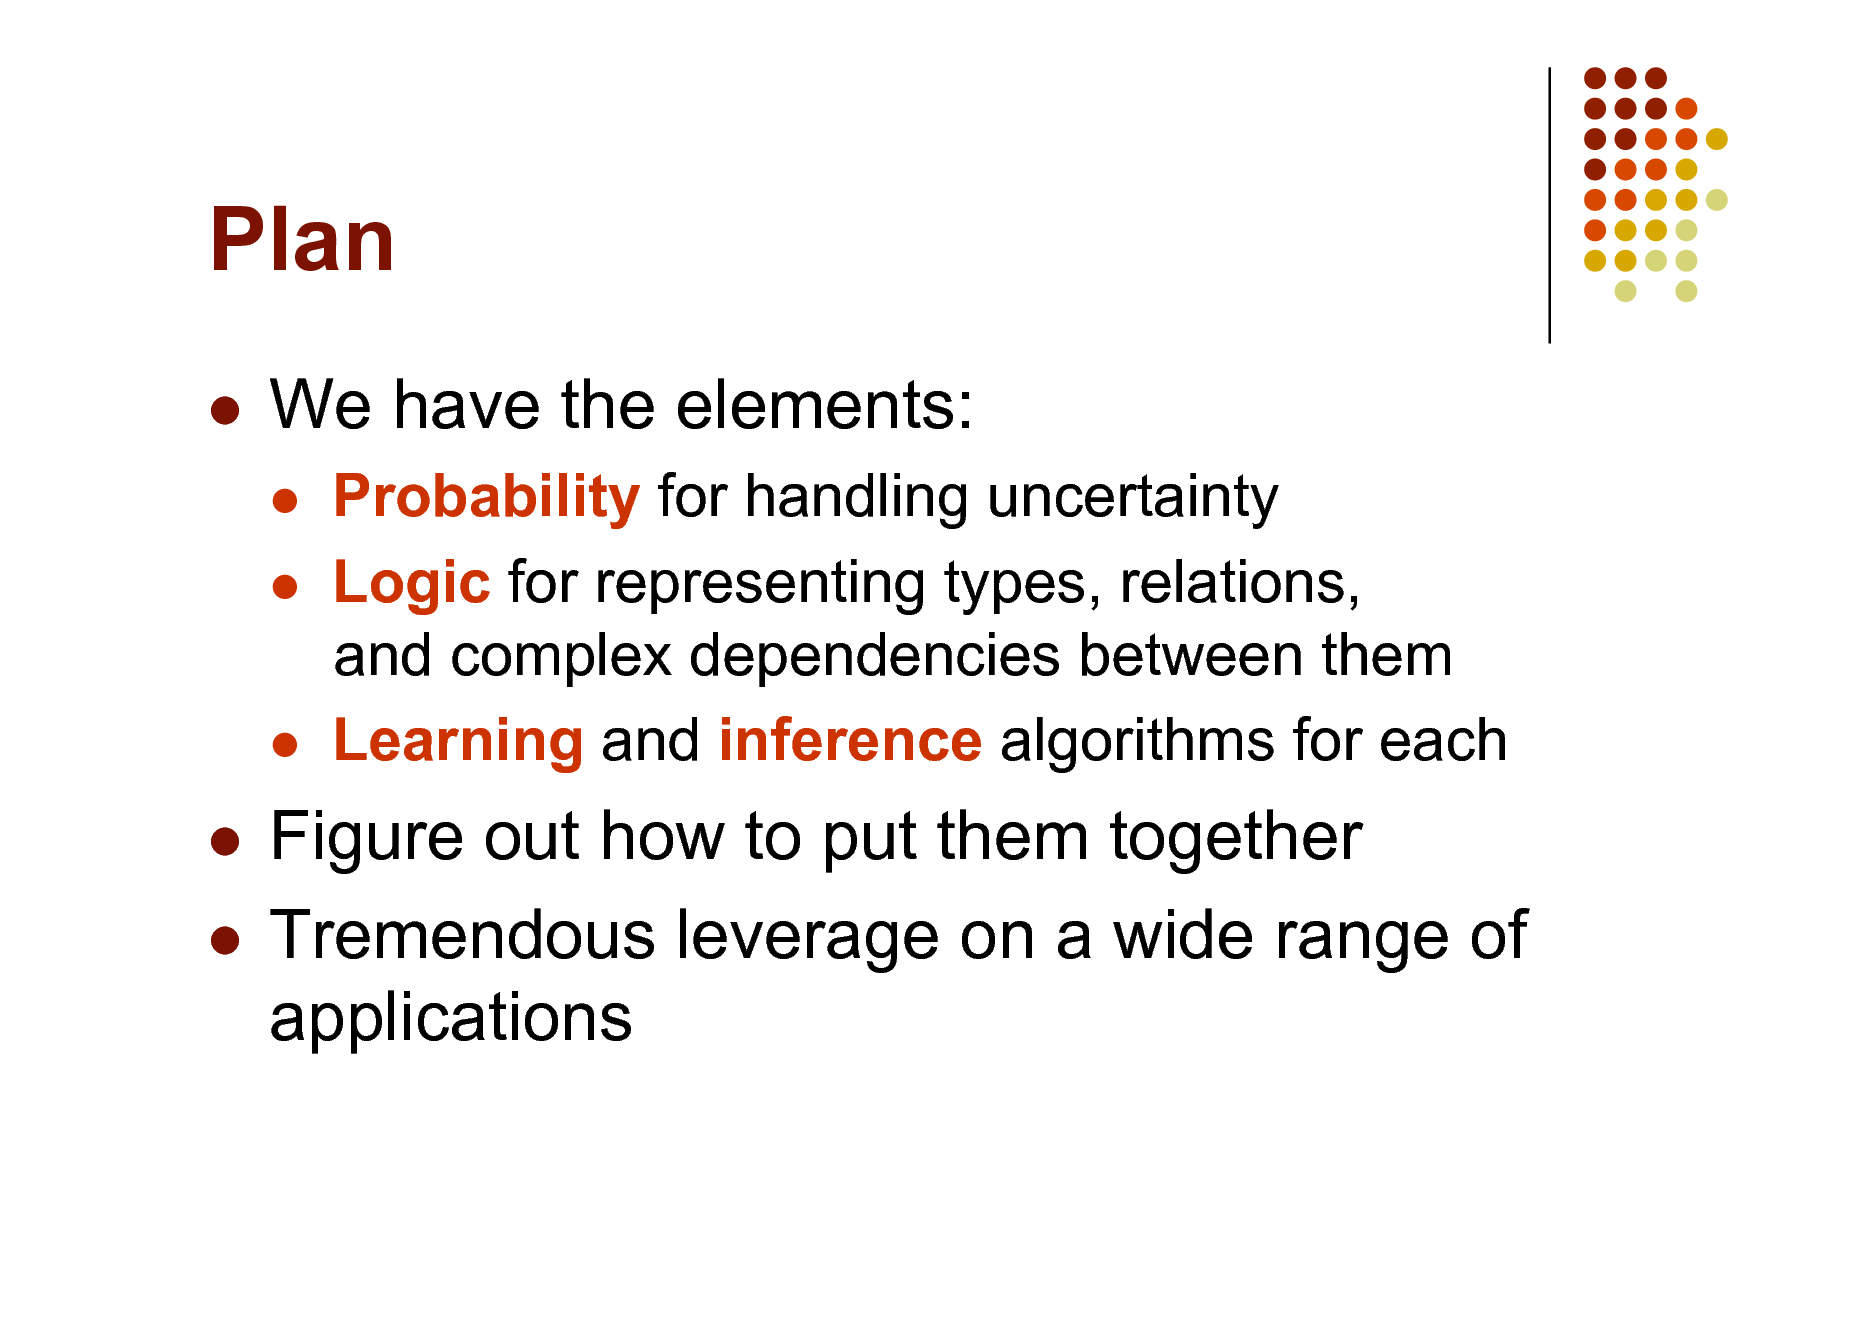 Slide: Plan   We have the elements:      Probability for handling uncertainty Logic for representing types, relations, and complex dependencies between them Learning and inference algorithms for each  Figure out how to put them together  Tremendous leverage on a wide range of applications